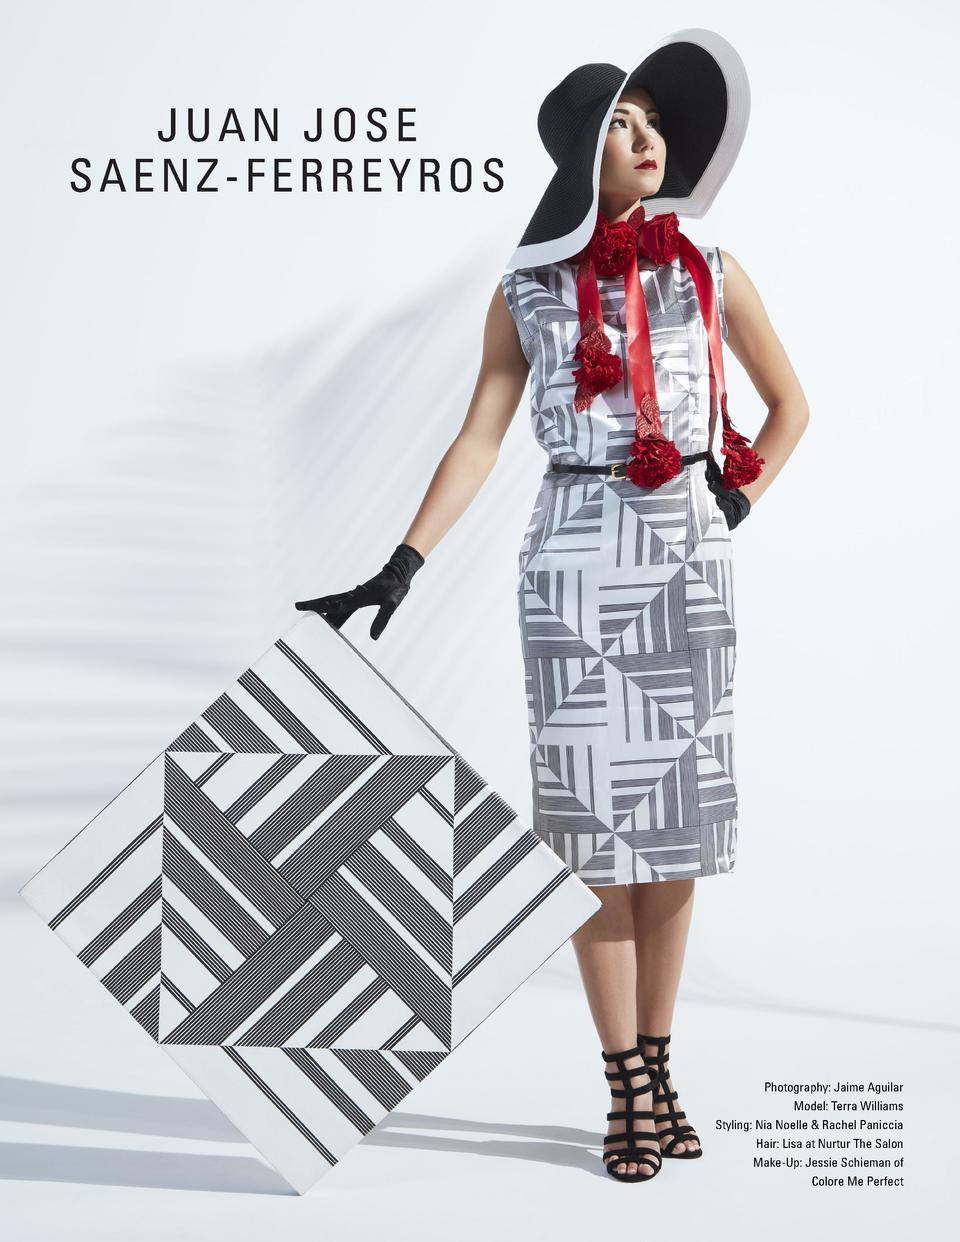 JUAN JOSE SAENZ-FERREYROS  Photography  Jaime Aguilar Model  Terra Williams Styling  Nia Noelle   Rachel Paniccia Hair  Li...